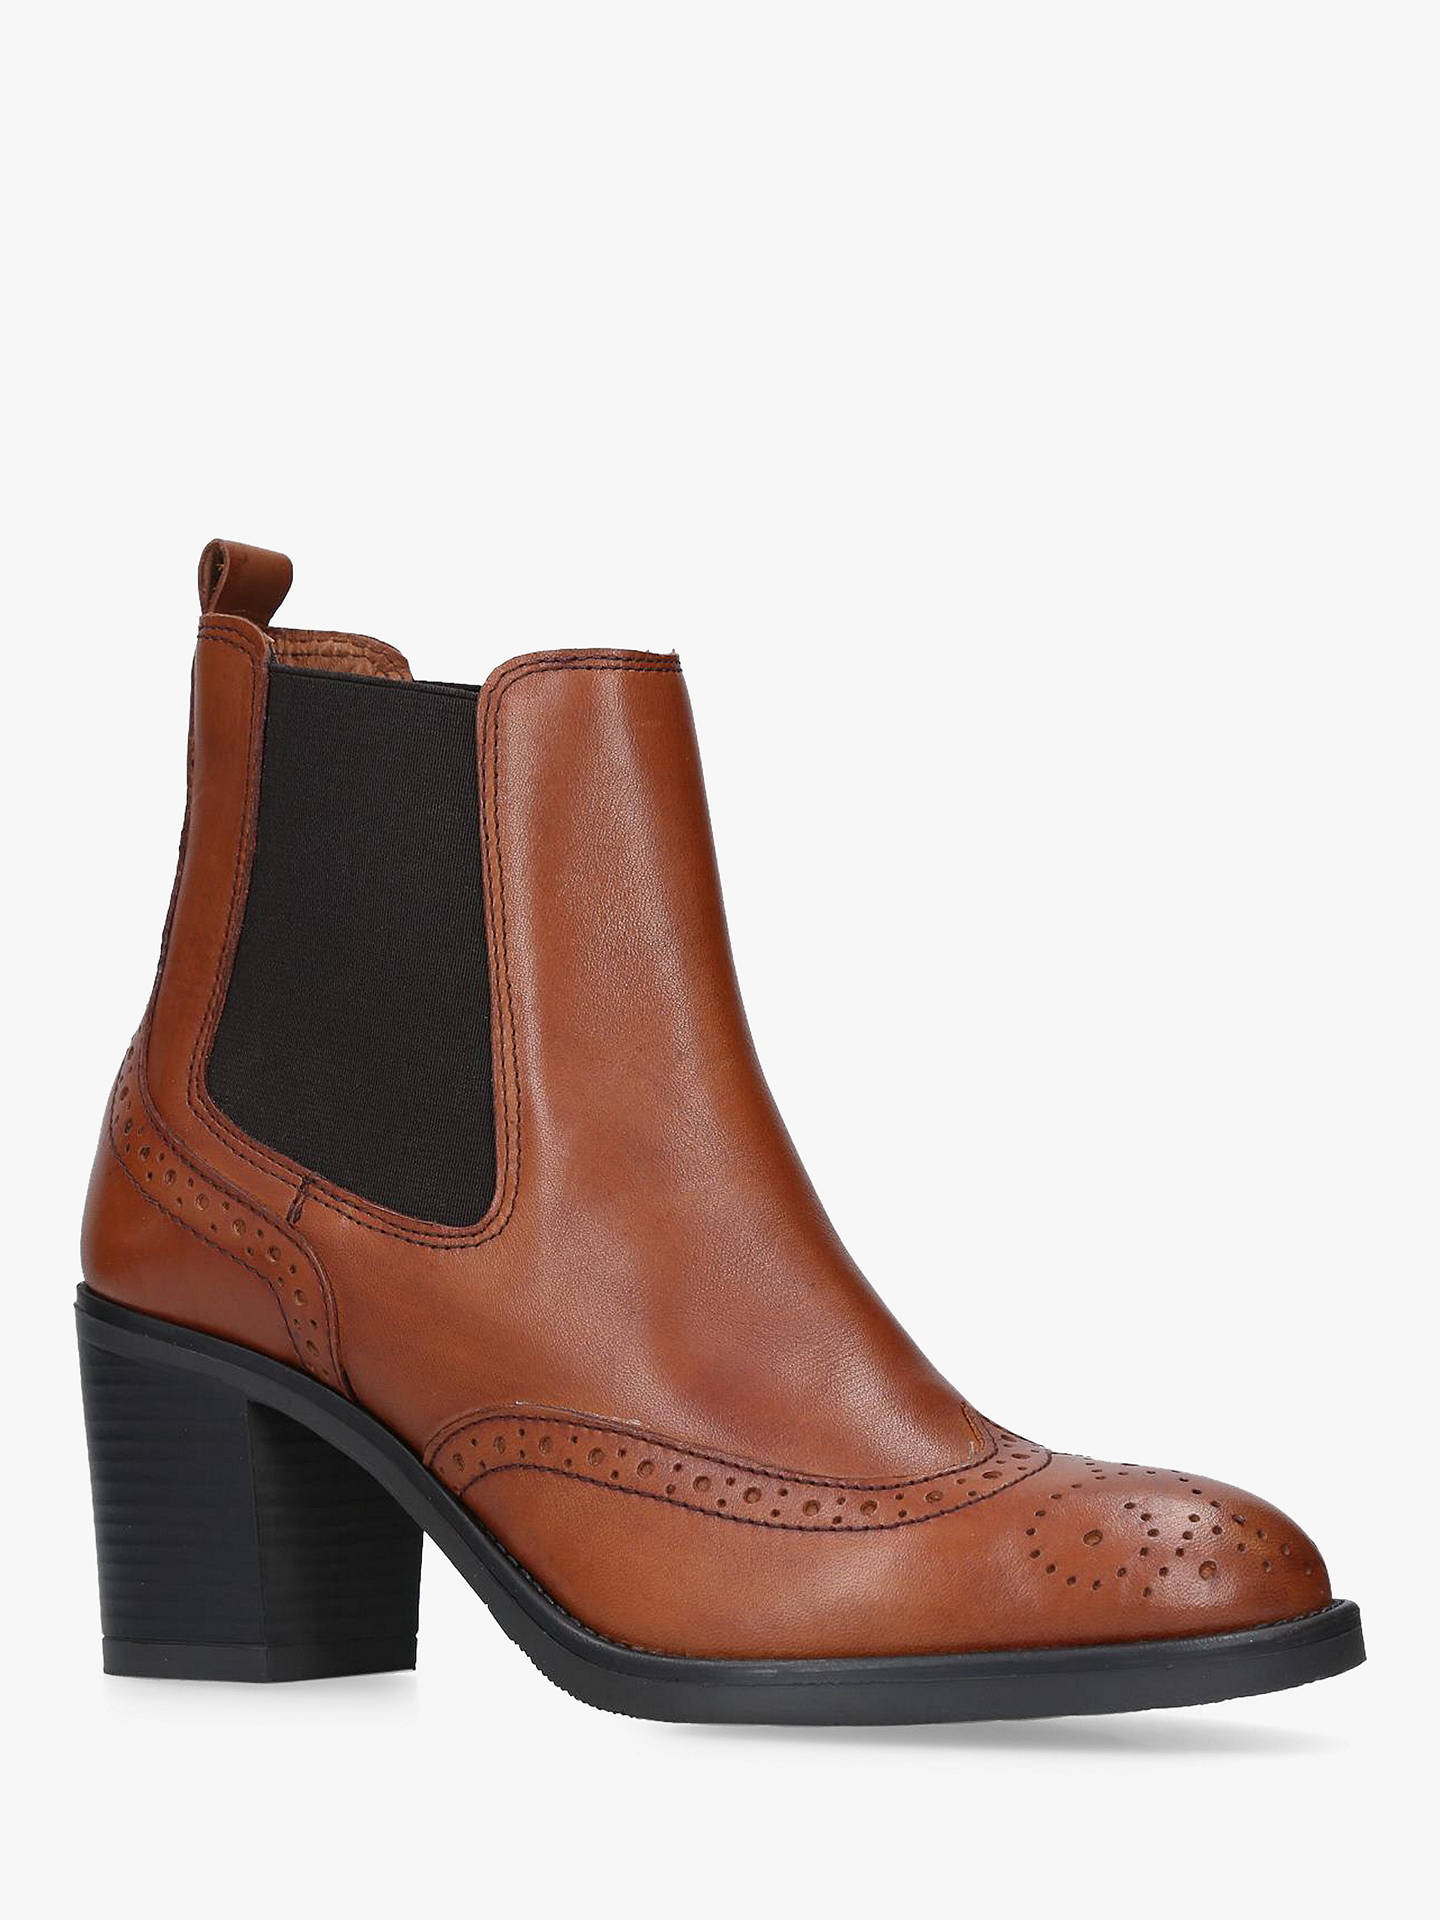 BuyCarvela Comfort Raquel Block Heel Ankle Boots, Brown Leather, 5 Online at johnlewis.com